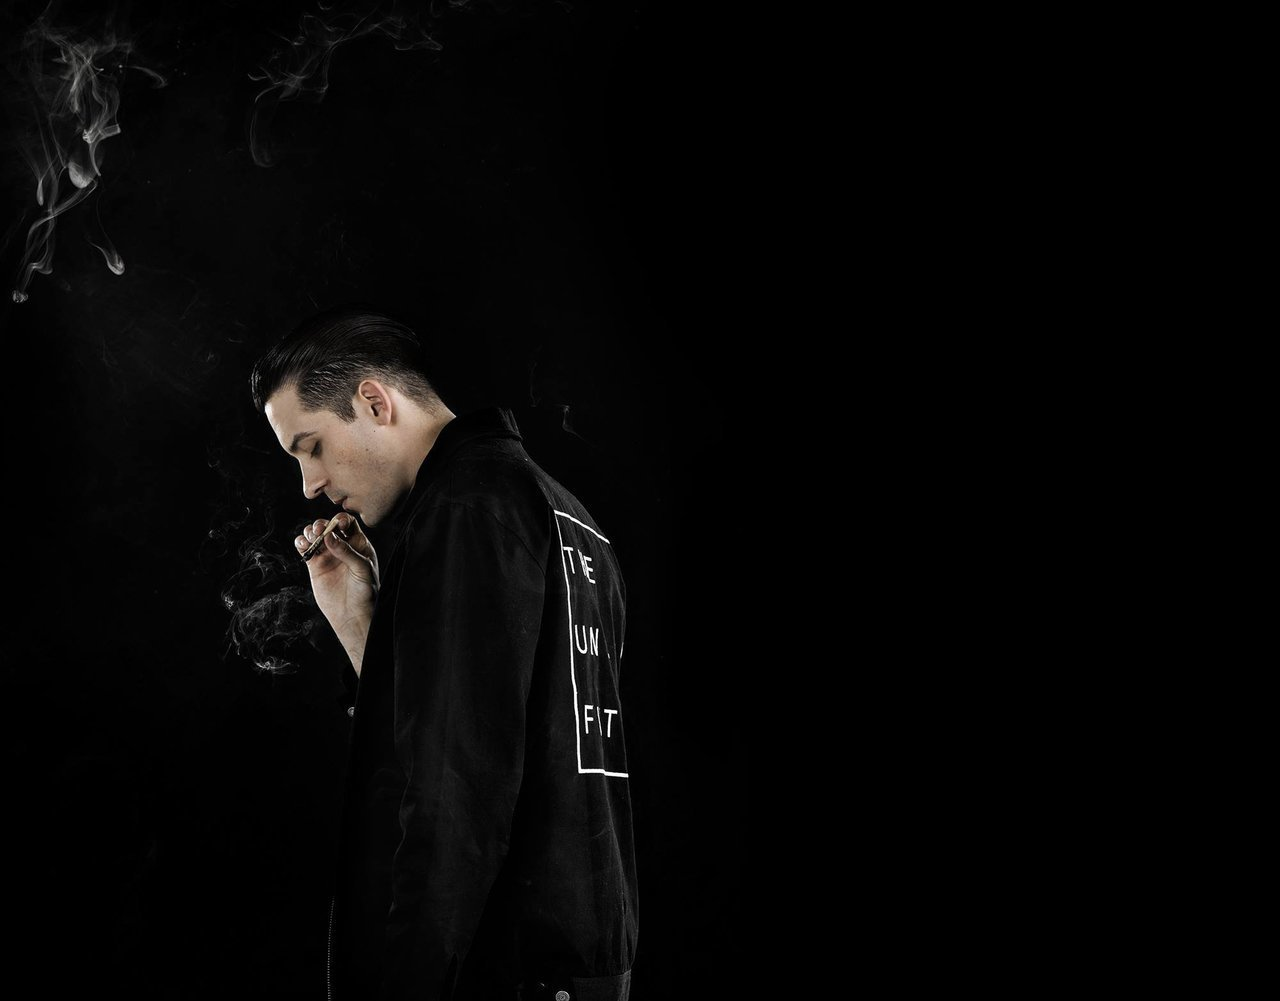 article and g-eazy image